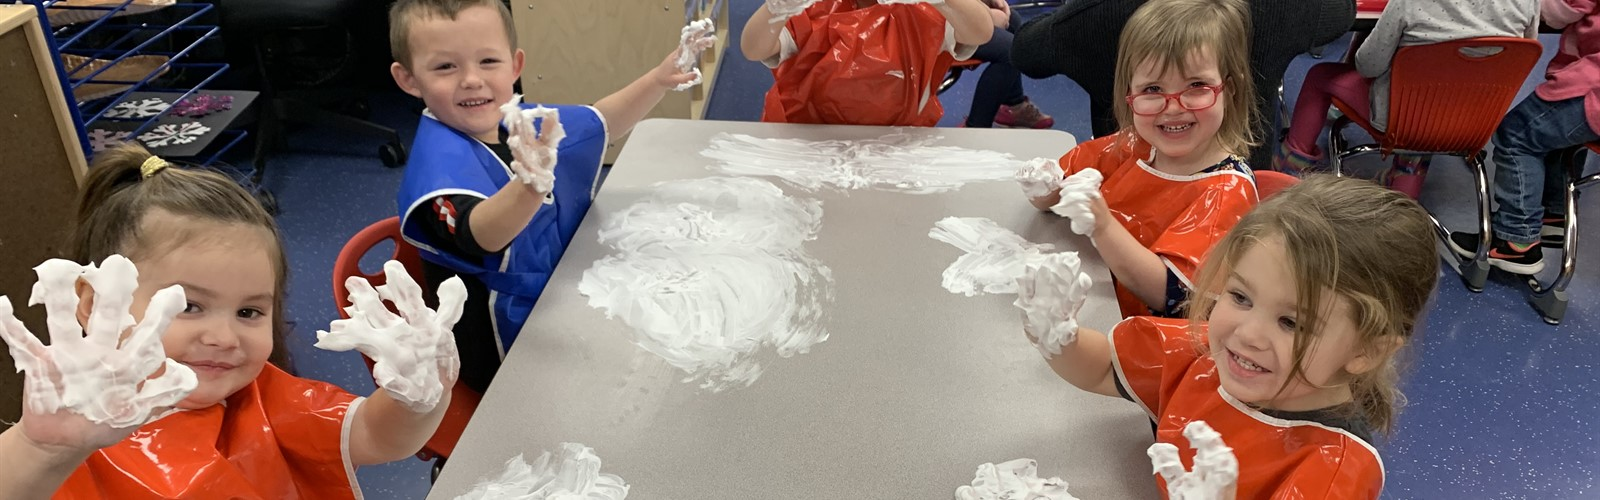 Preschool students hold up their hands with shaving cream on them. They are enjoying a sensory experience and practicing writing letters and drawing shapes.